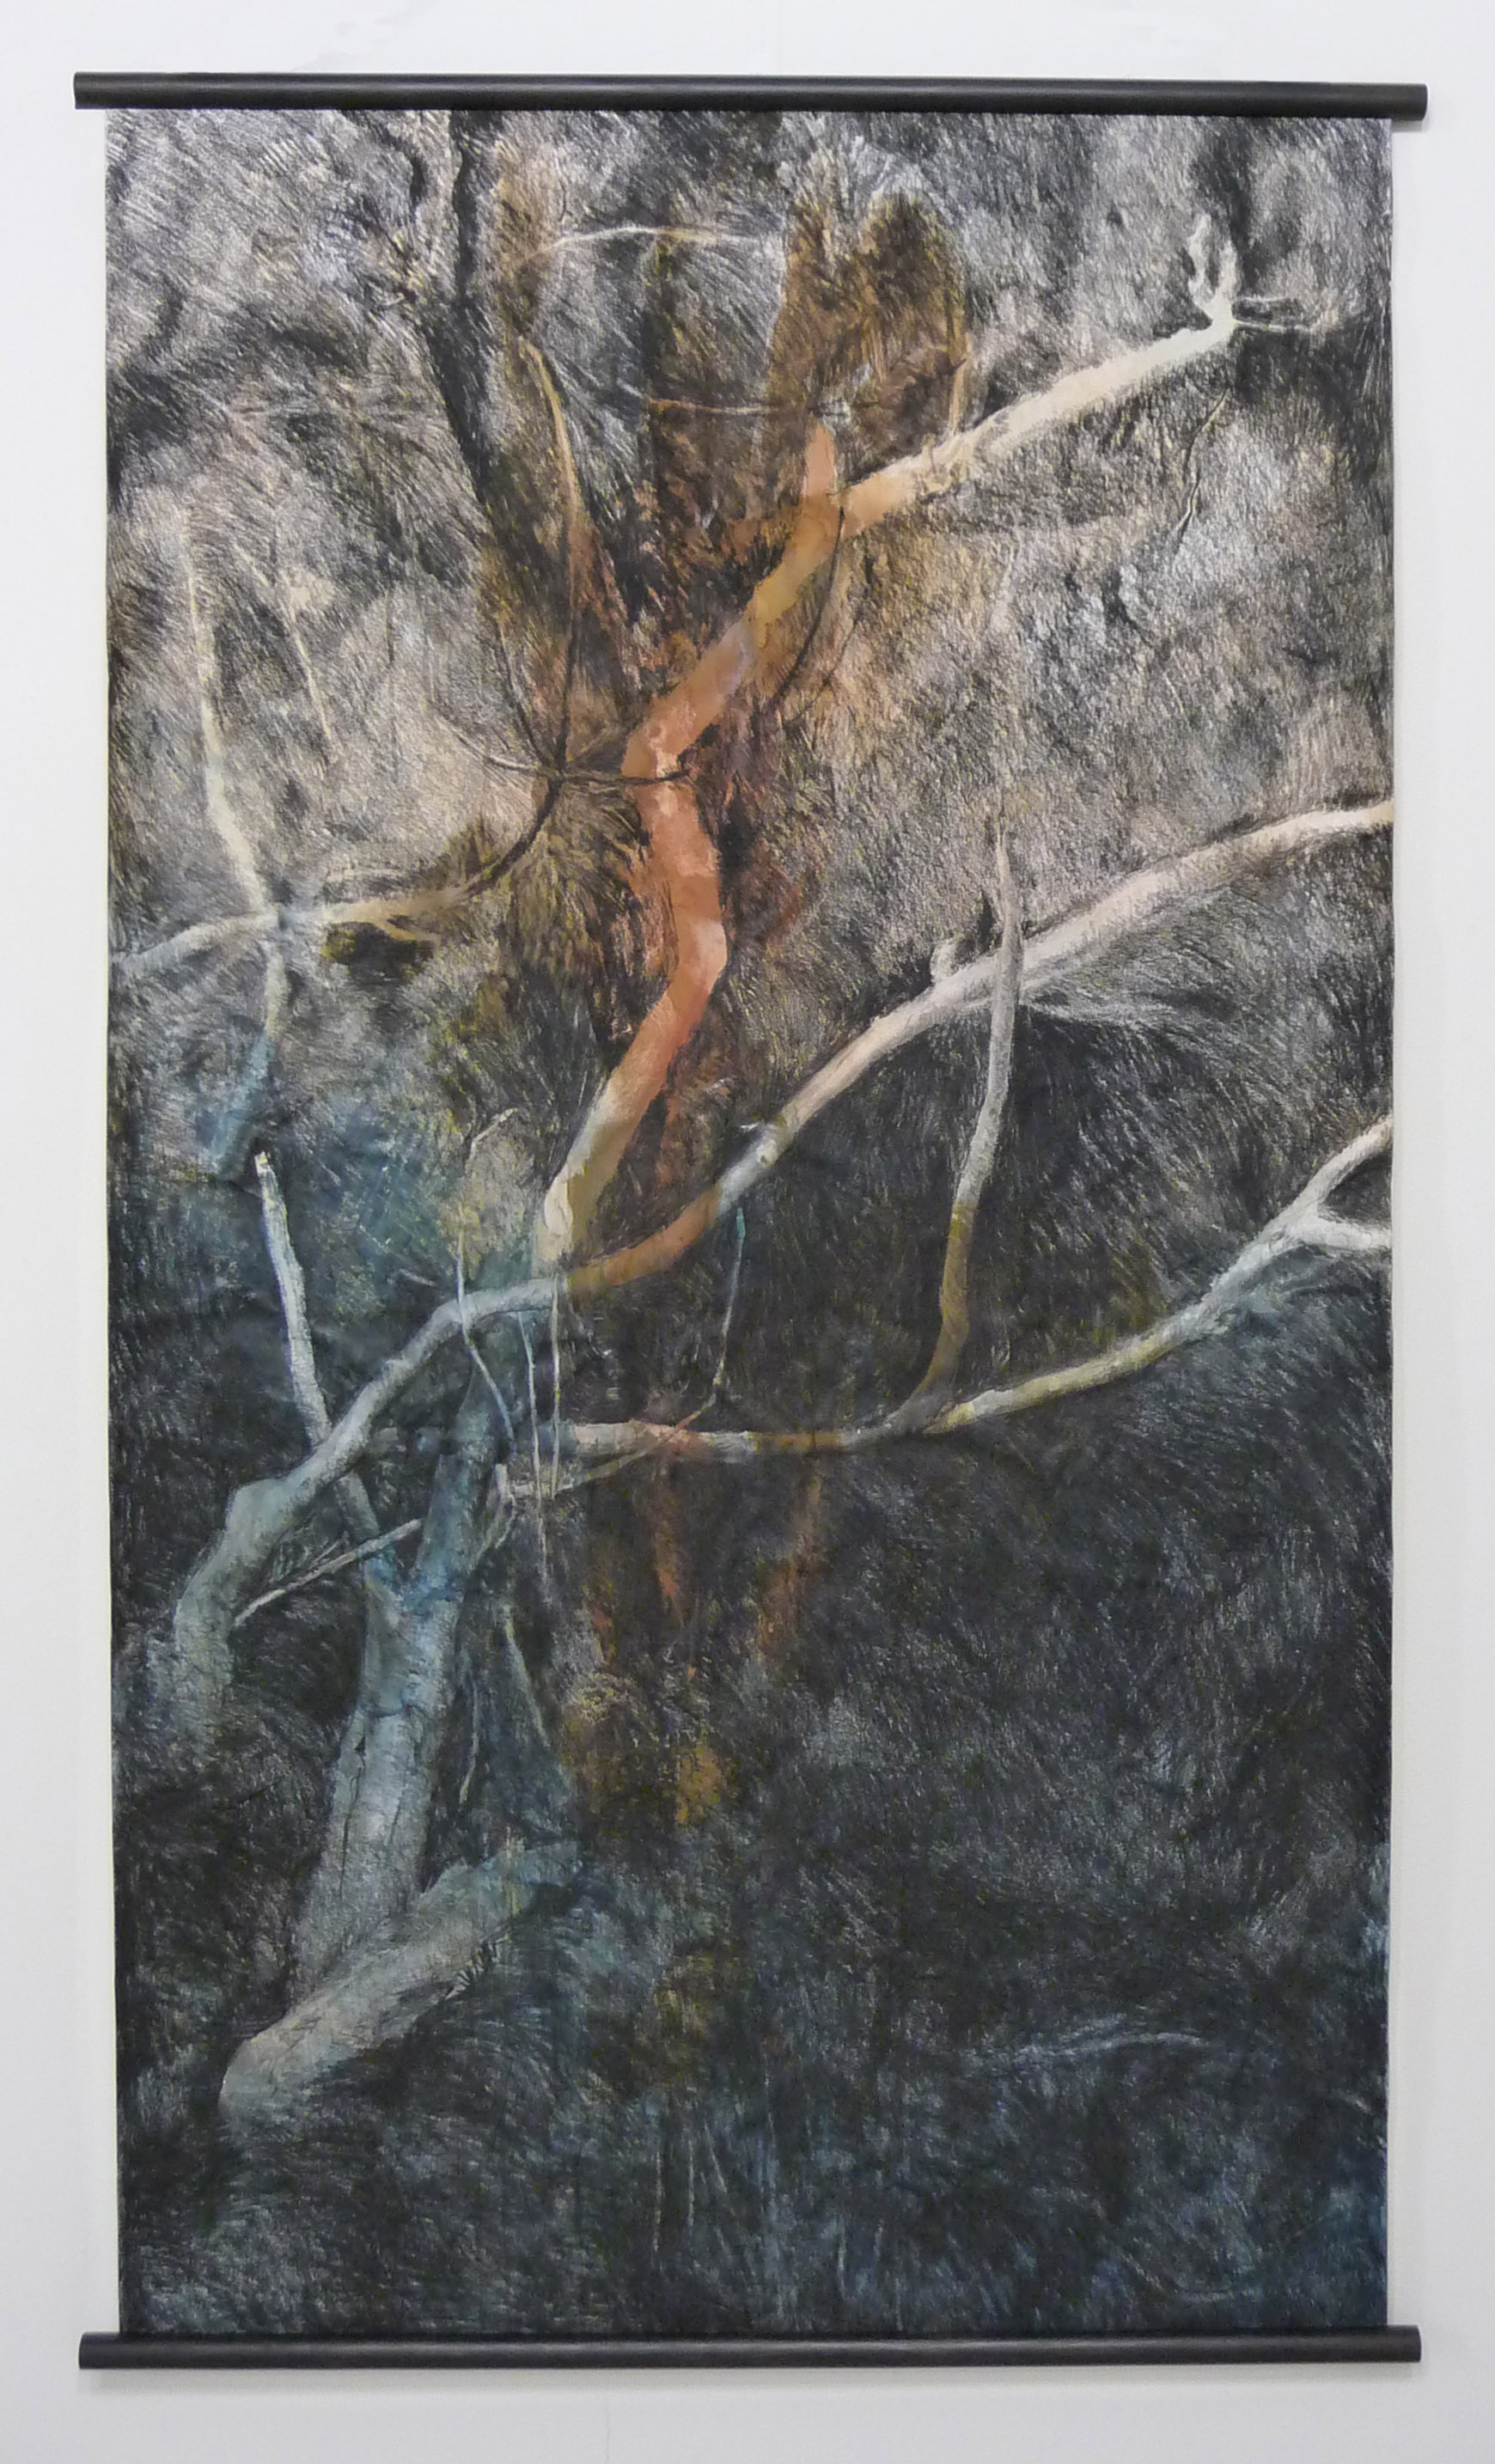 <p><strong>Death of Heather</strong><br />Casein and charcoal on paper   104x176 cm